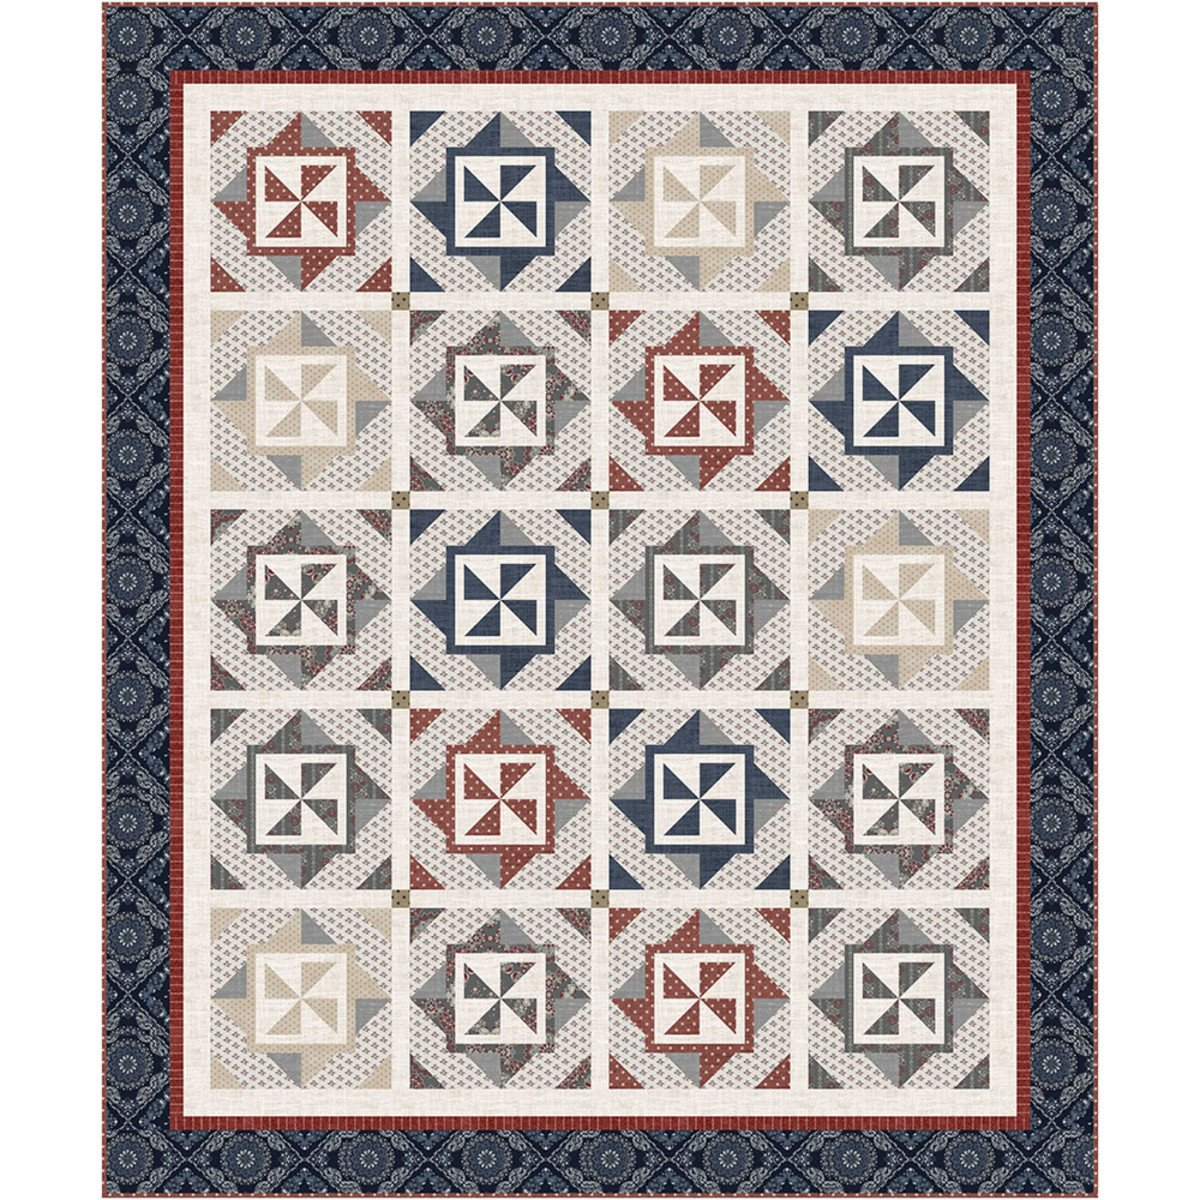 Earl Grey fabric quilt kit by Wendy Sheppard for Windham Fabrics